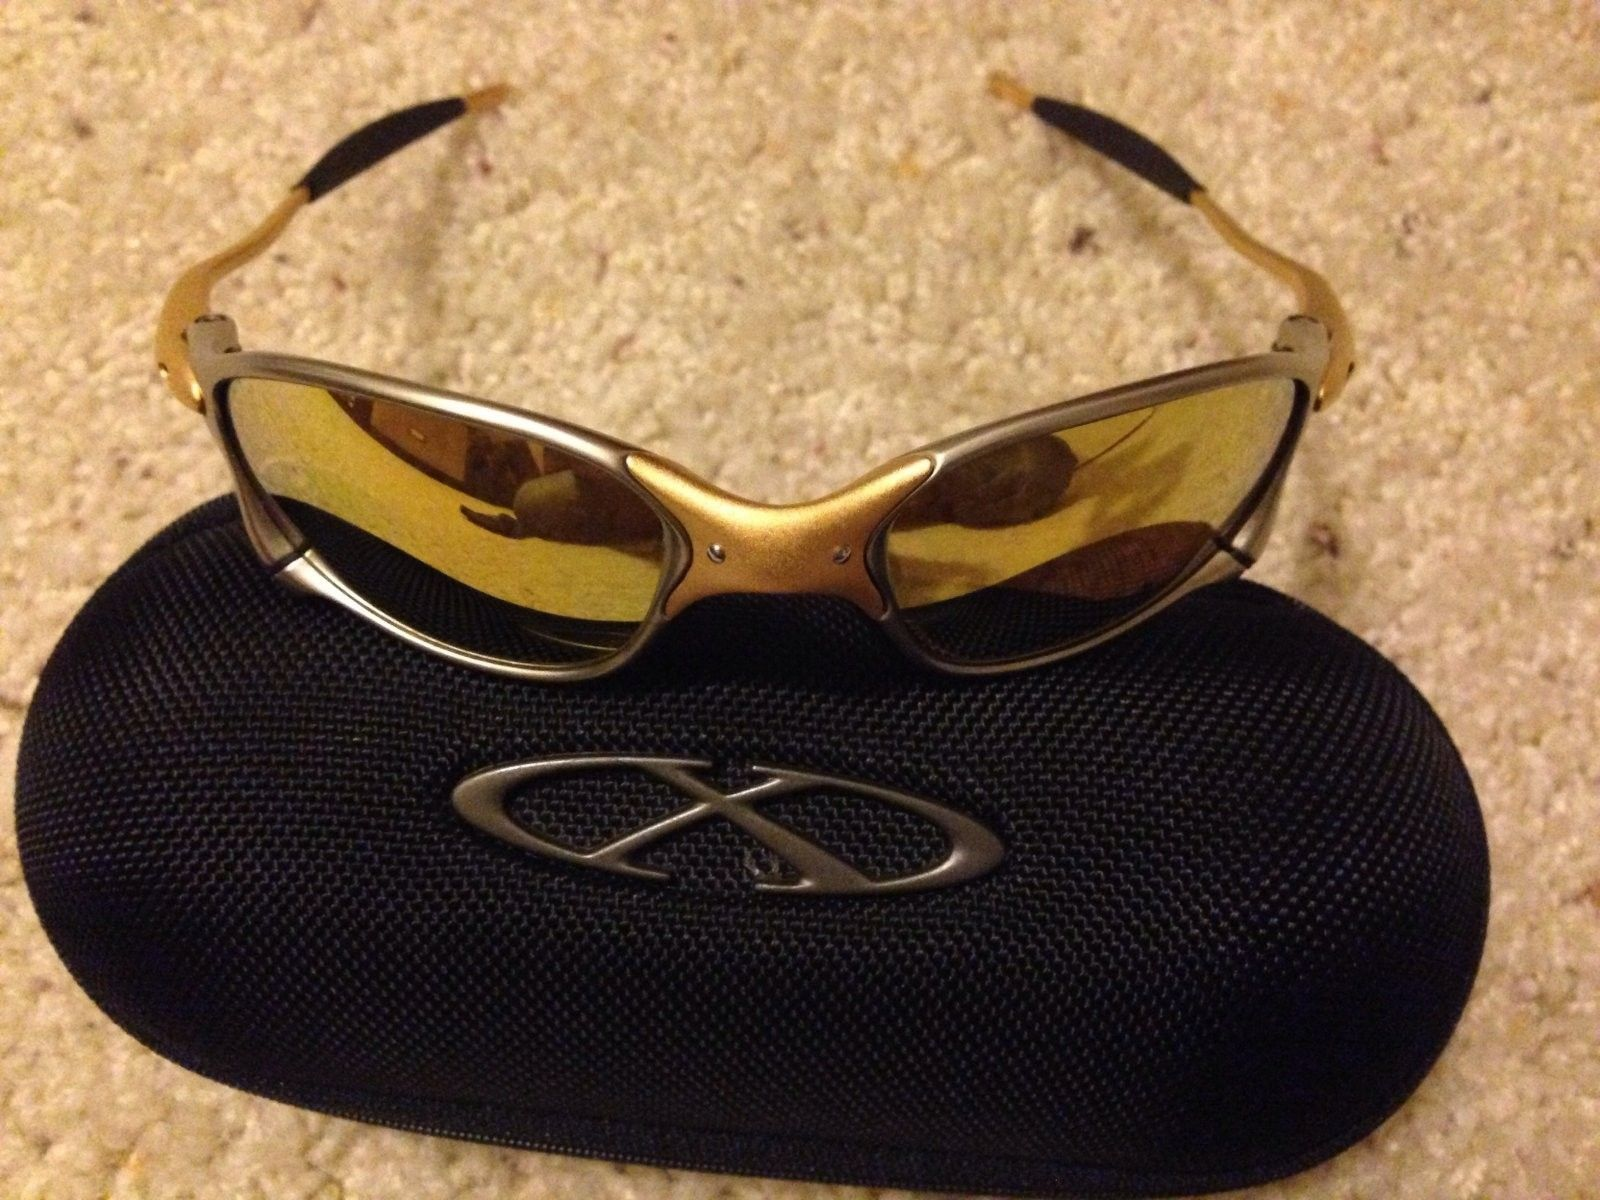 Bought A Pair Of 24k XXs - image.jpg